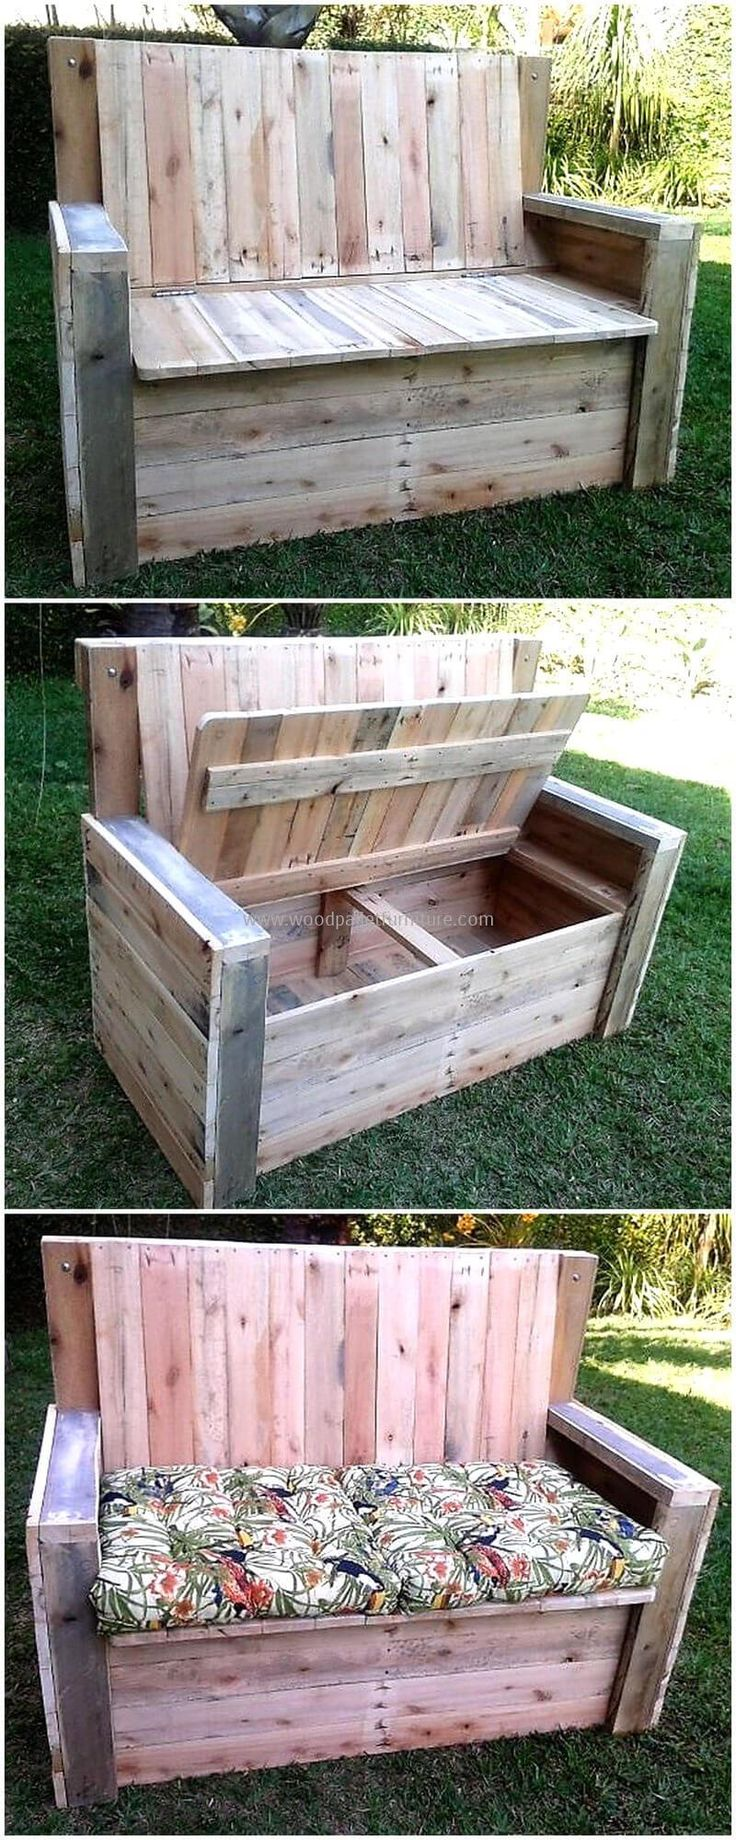 Garden is a place where you like  sitting and enjoying nature.  We have crafted garden bench incredibly so that you can have awesome project at your place. Not only this; with storage option make it more handy project. Pallet garden furniture bench with storage is smashing project.